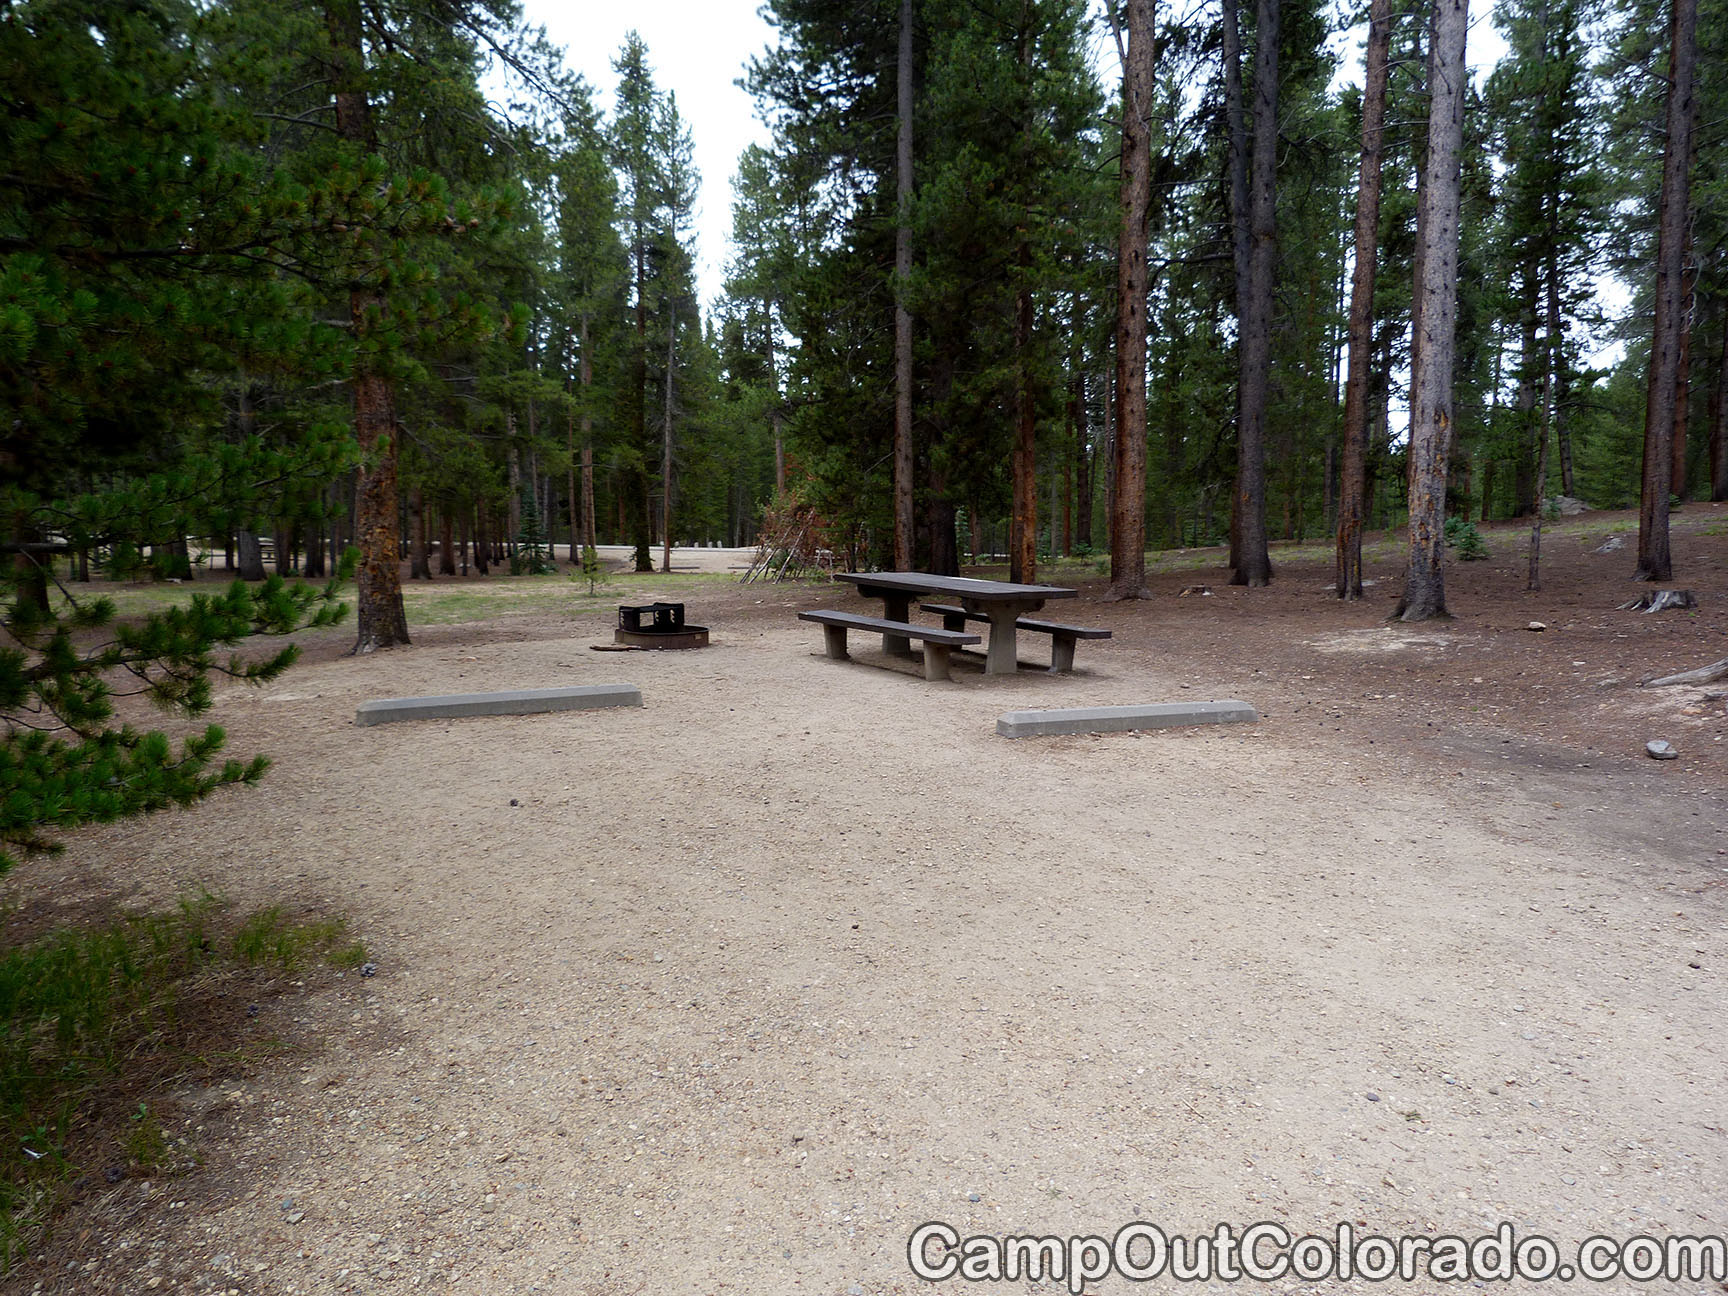 Camp-out-colorado-molly-brown-turquoise-lake-tall-fire-pit